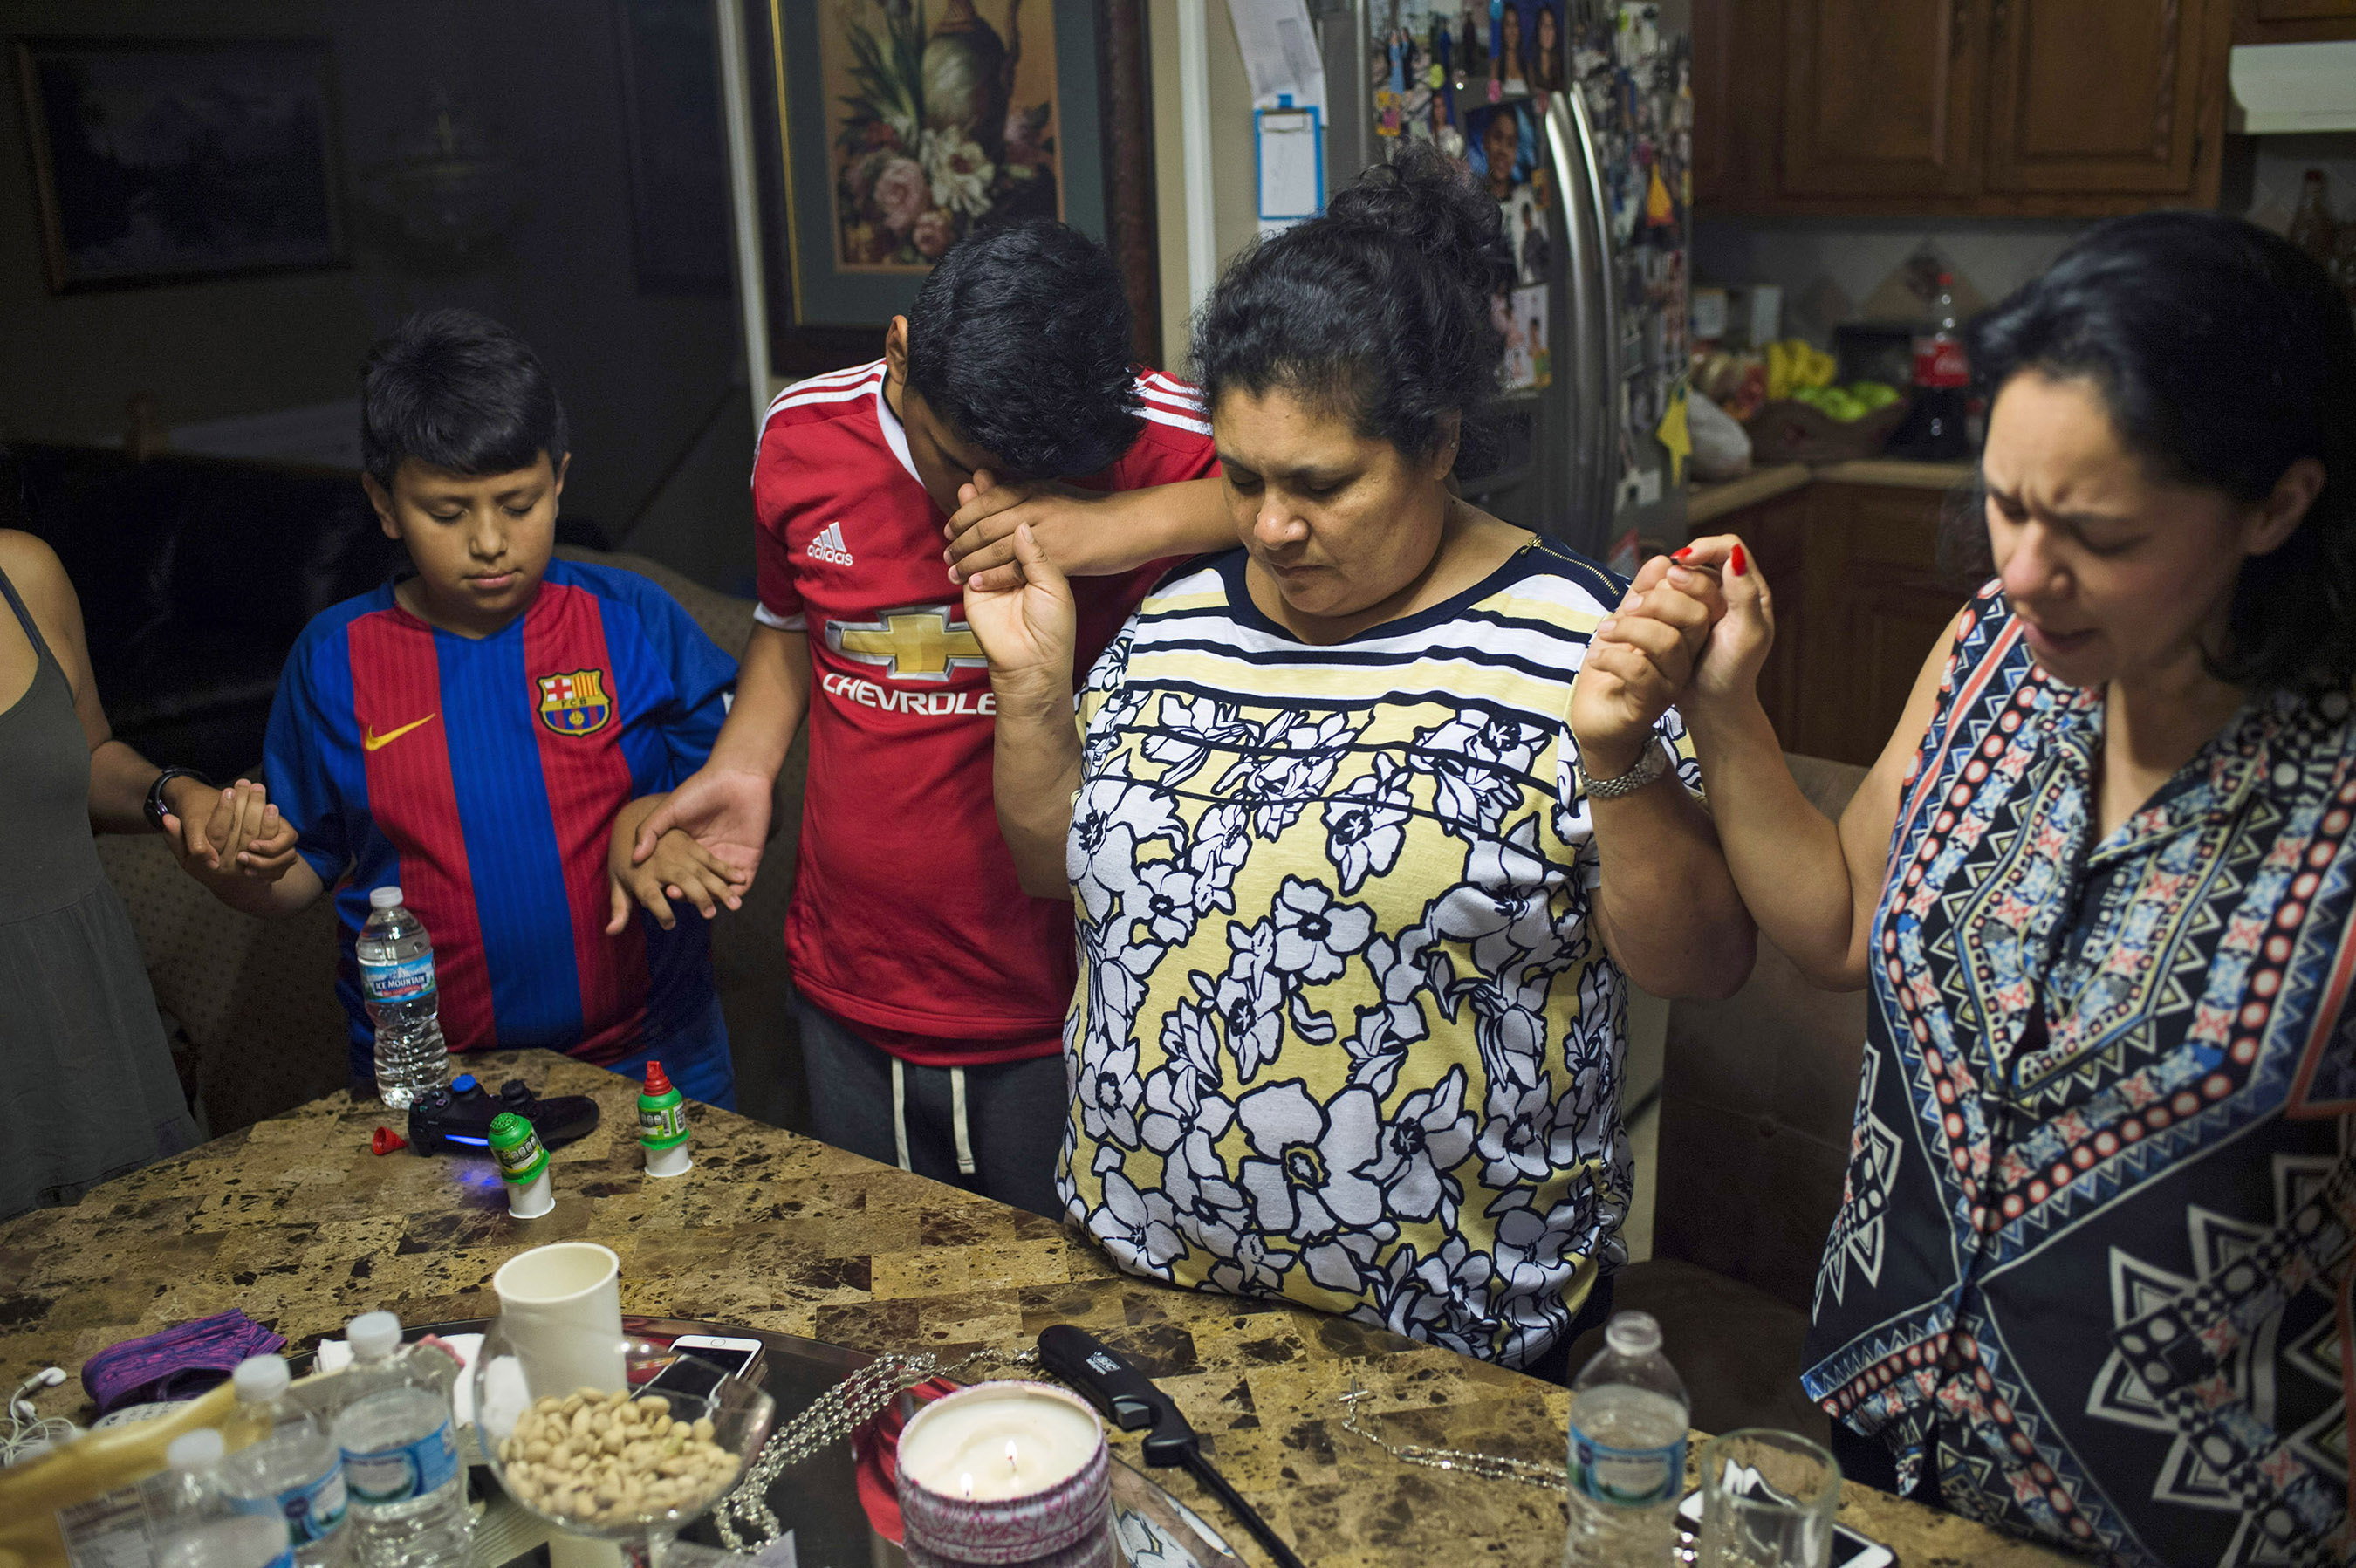 From left, Wilmer Garcia, Bryan Quintana-Salazar, 13, Lourdes Salazar Bautista and Tania Garcia Ortega prayed that Bautista would not face deportation the next morning, on Sunday, July 30, 2017 at Bautista's former home in Ann Arbor, Mich. Bautista gathered around the table with her friends, family and anti-deportation campaign leaders the night before Bautista met with U.S. Immigration and Customs Enforcement (ICE) and confirmed her deportation order. (Photo by Rachel Woolf/GroundTruth)